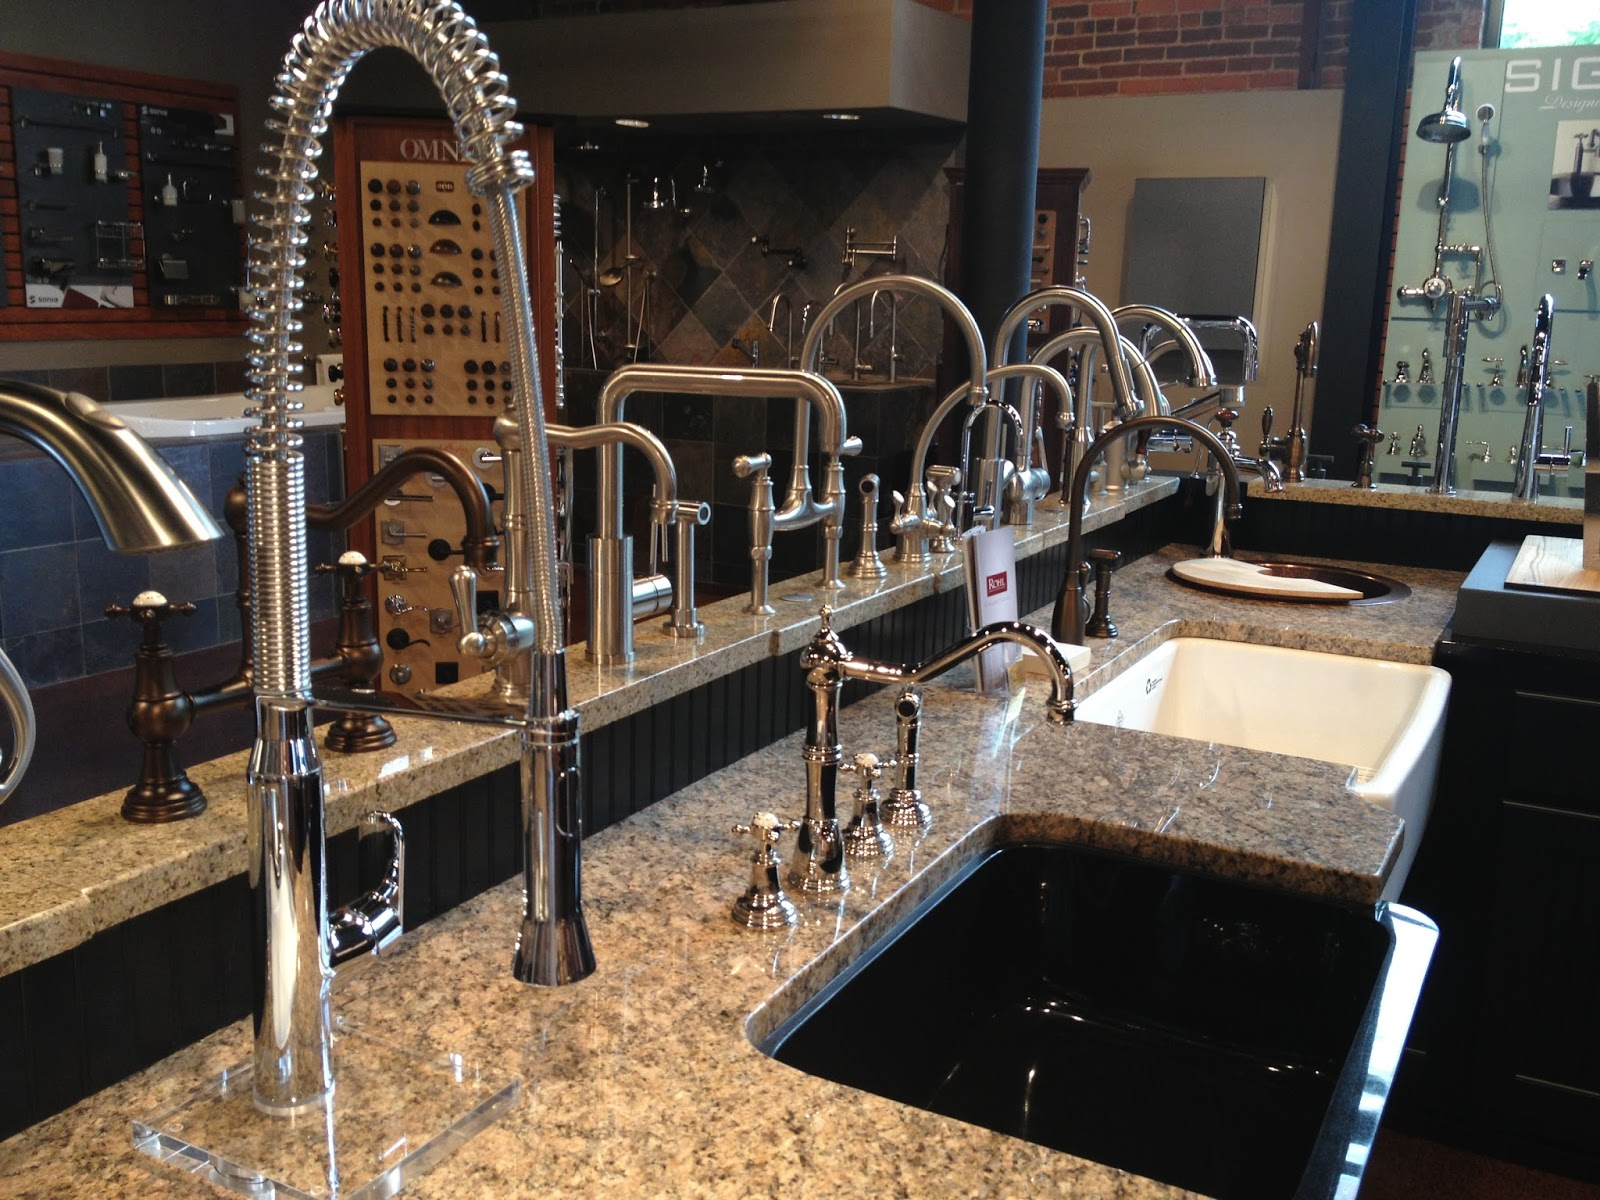 Beautiful display of sink hardware with assorted finishes